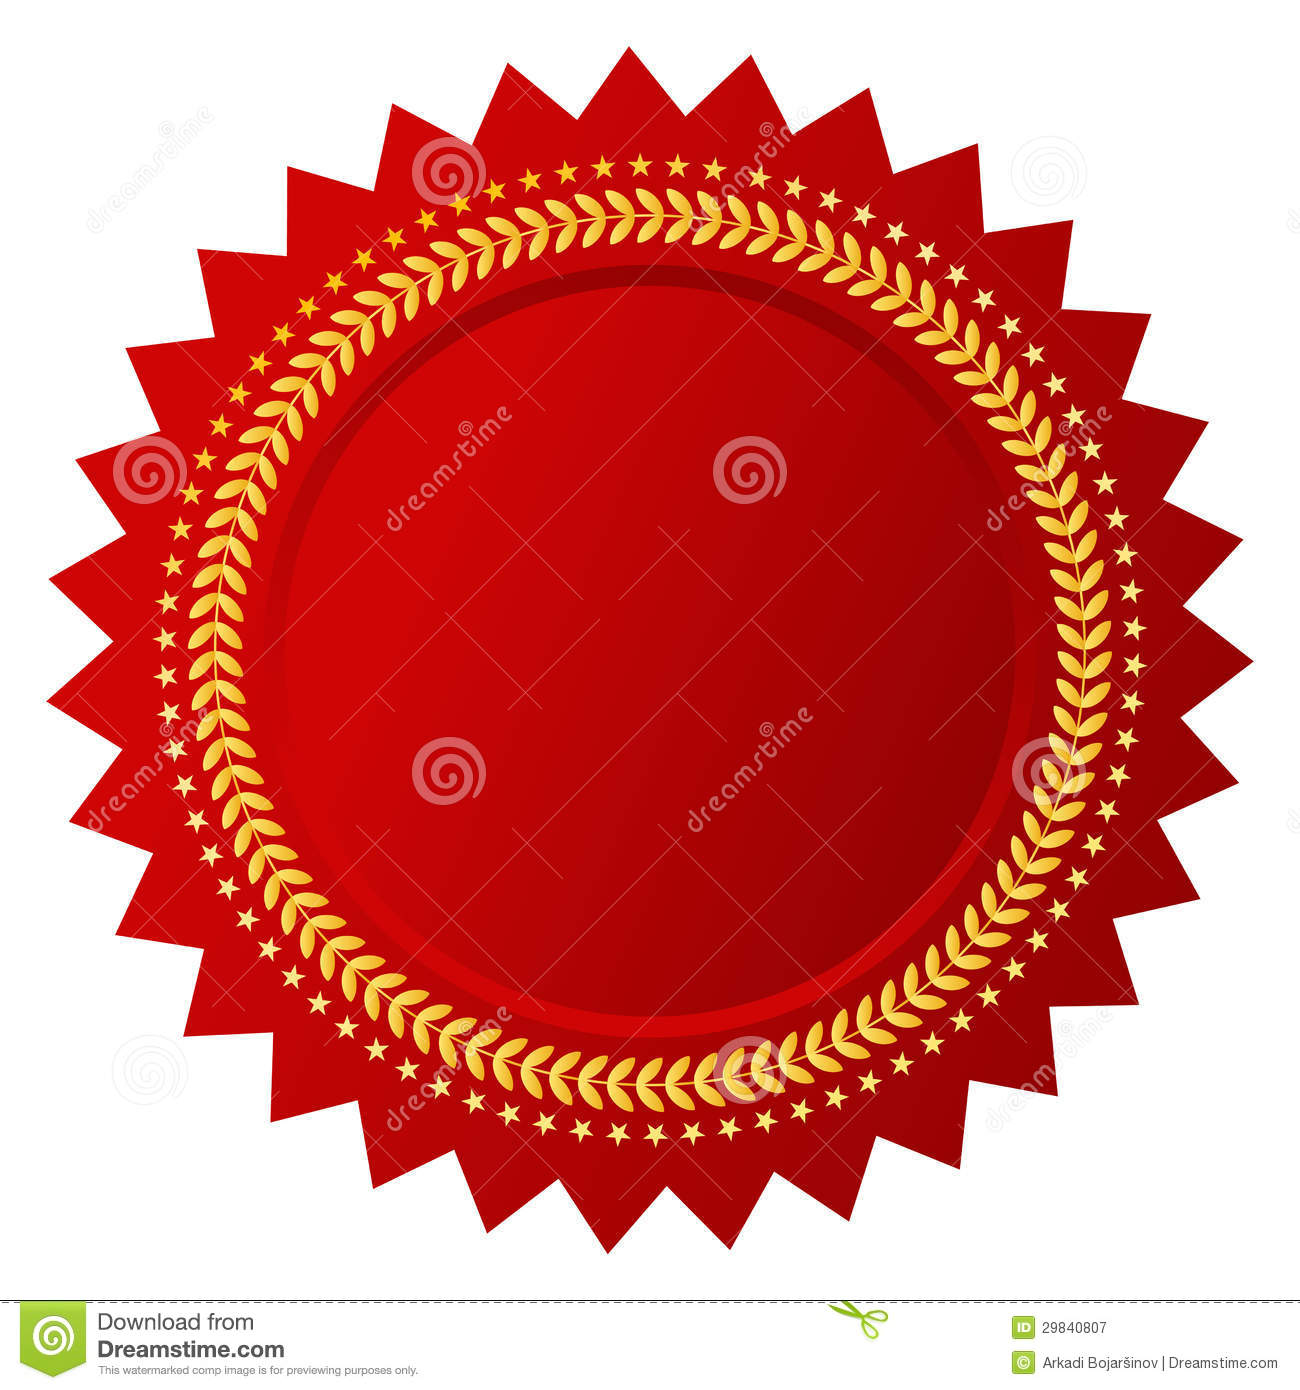 Vector certificate stock vector. Image of banner, business 29840807